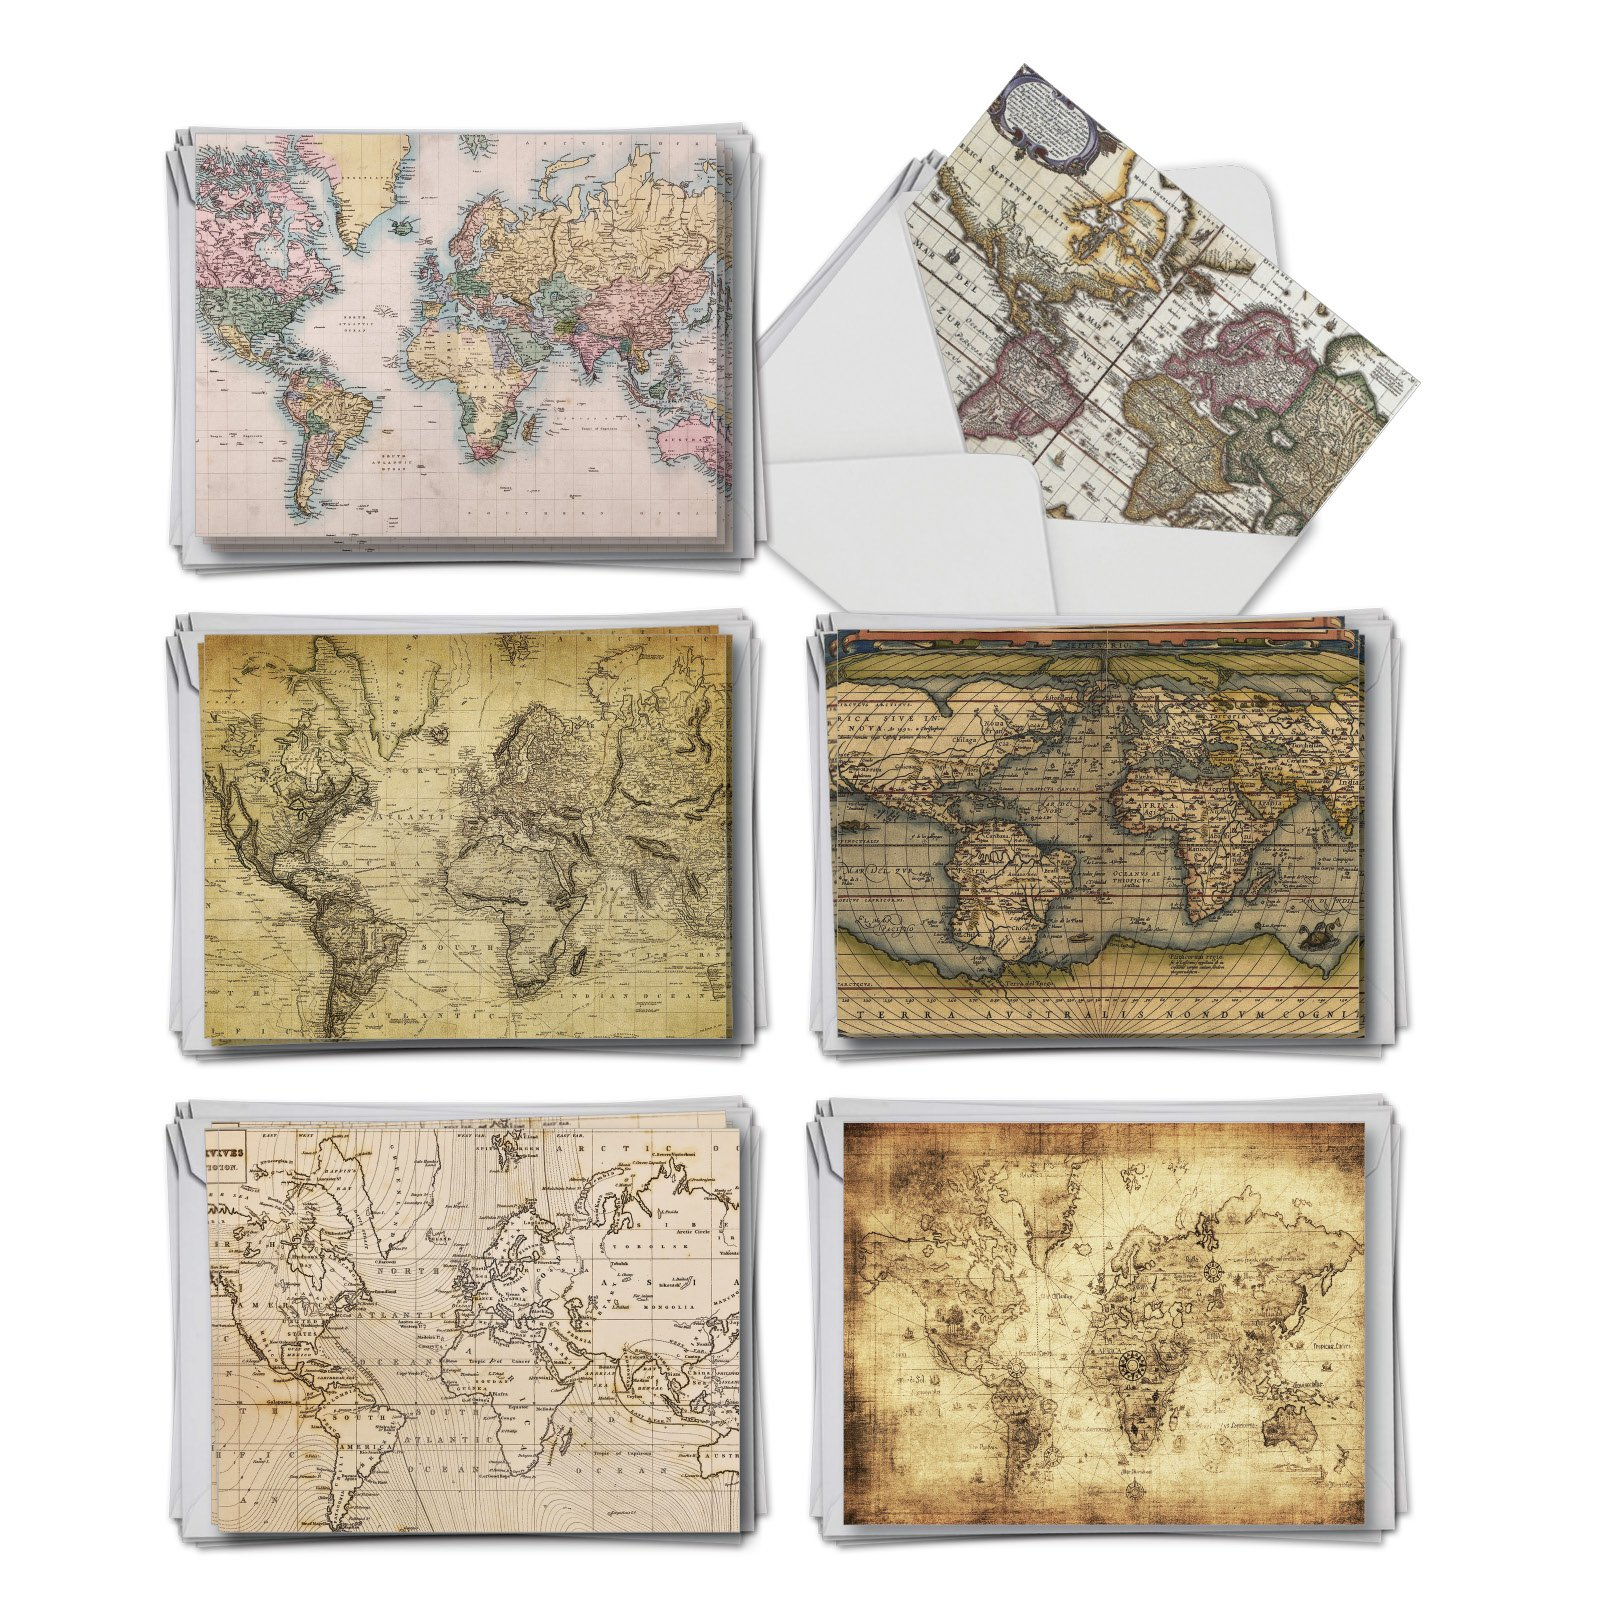 AM3076FTG-B6x6 Map Quests: 36 Assorted Thank You From Teacher Notecards Teacher TY, with Envelopes. (6 Each, of 6 Different Designs)